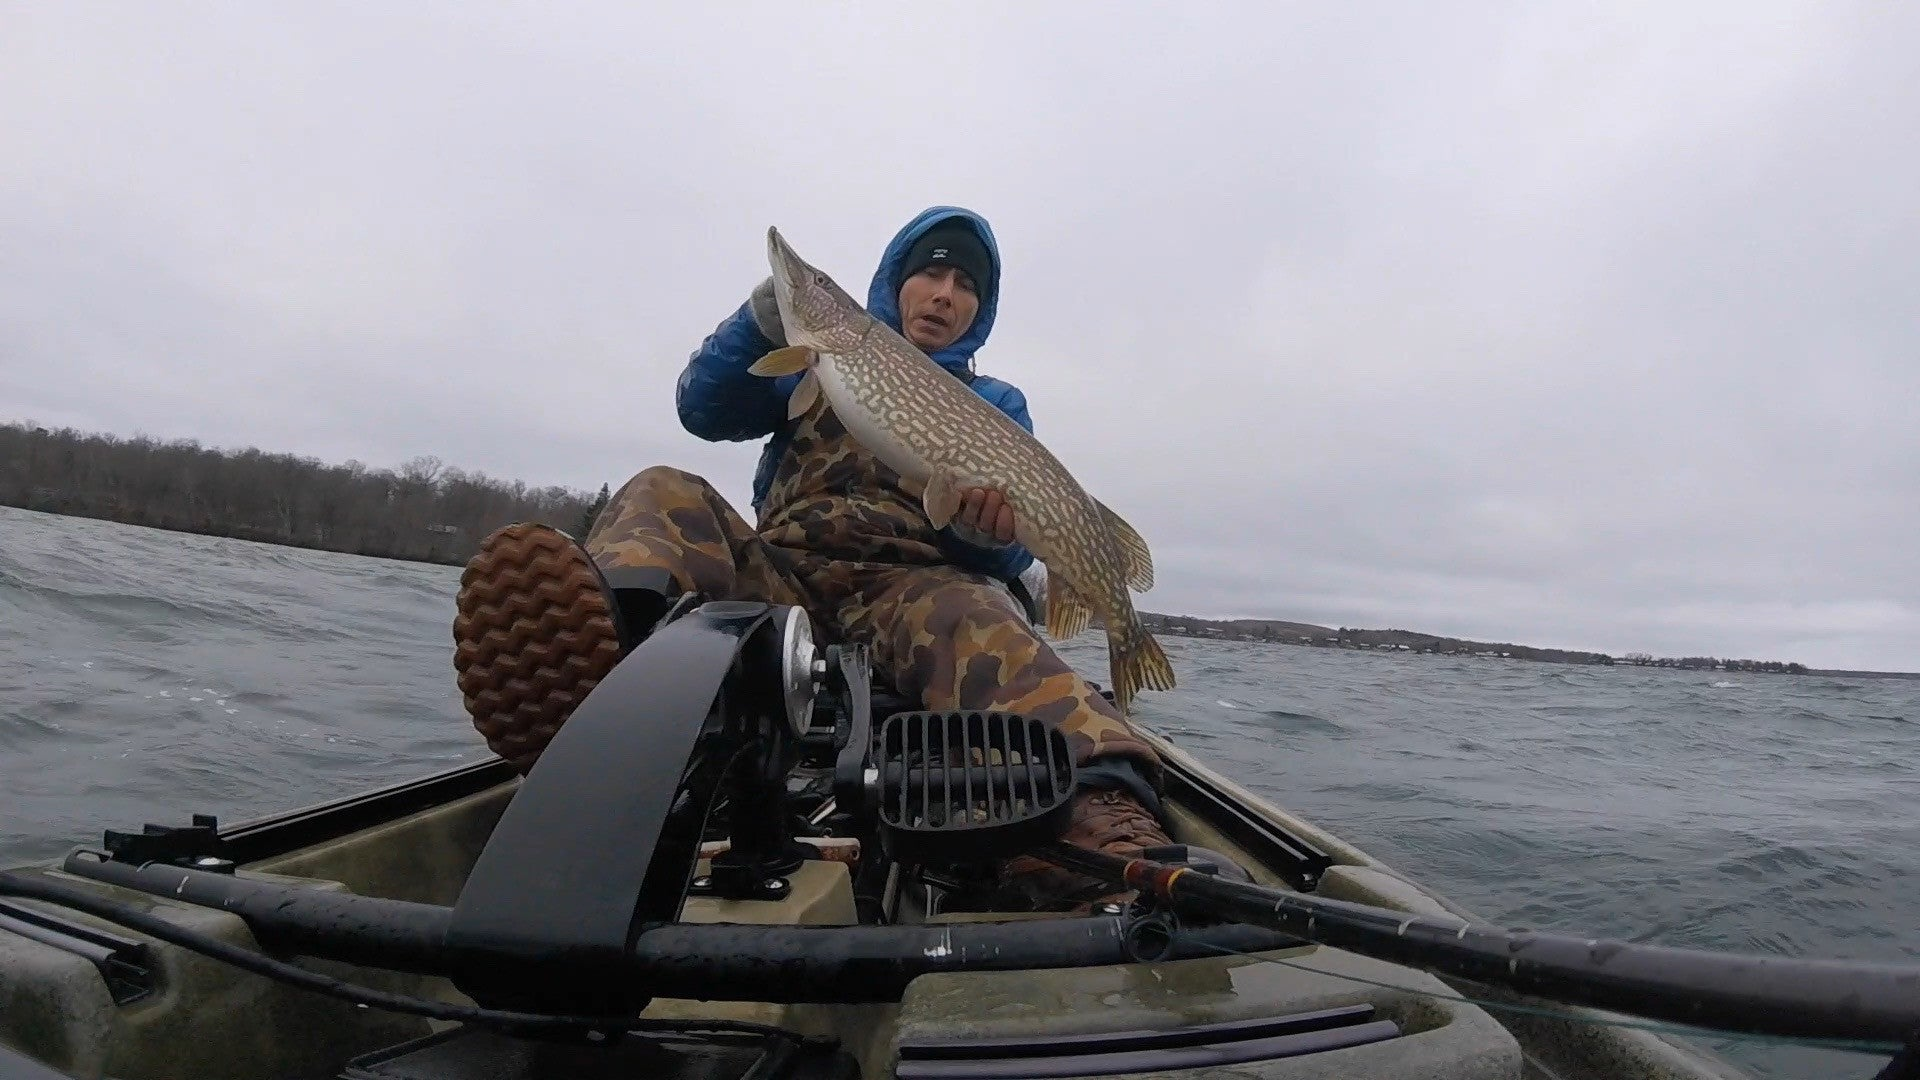 Guided Kayak Fishing Excursions - MN Surf Co